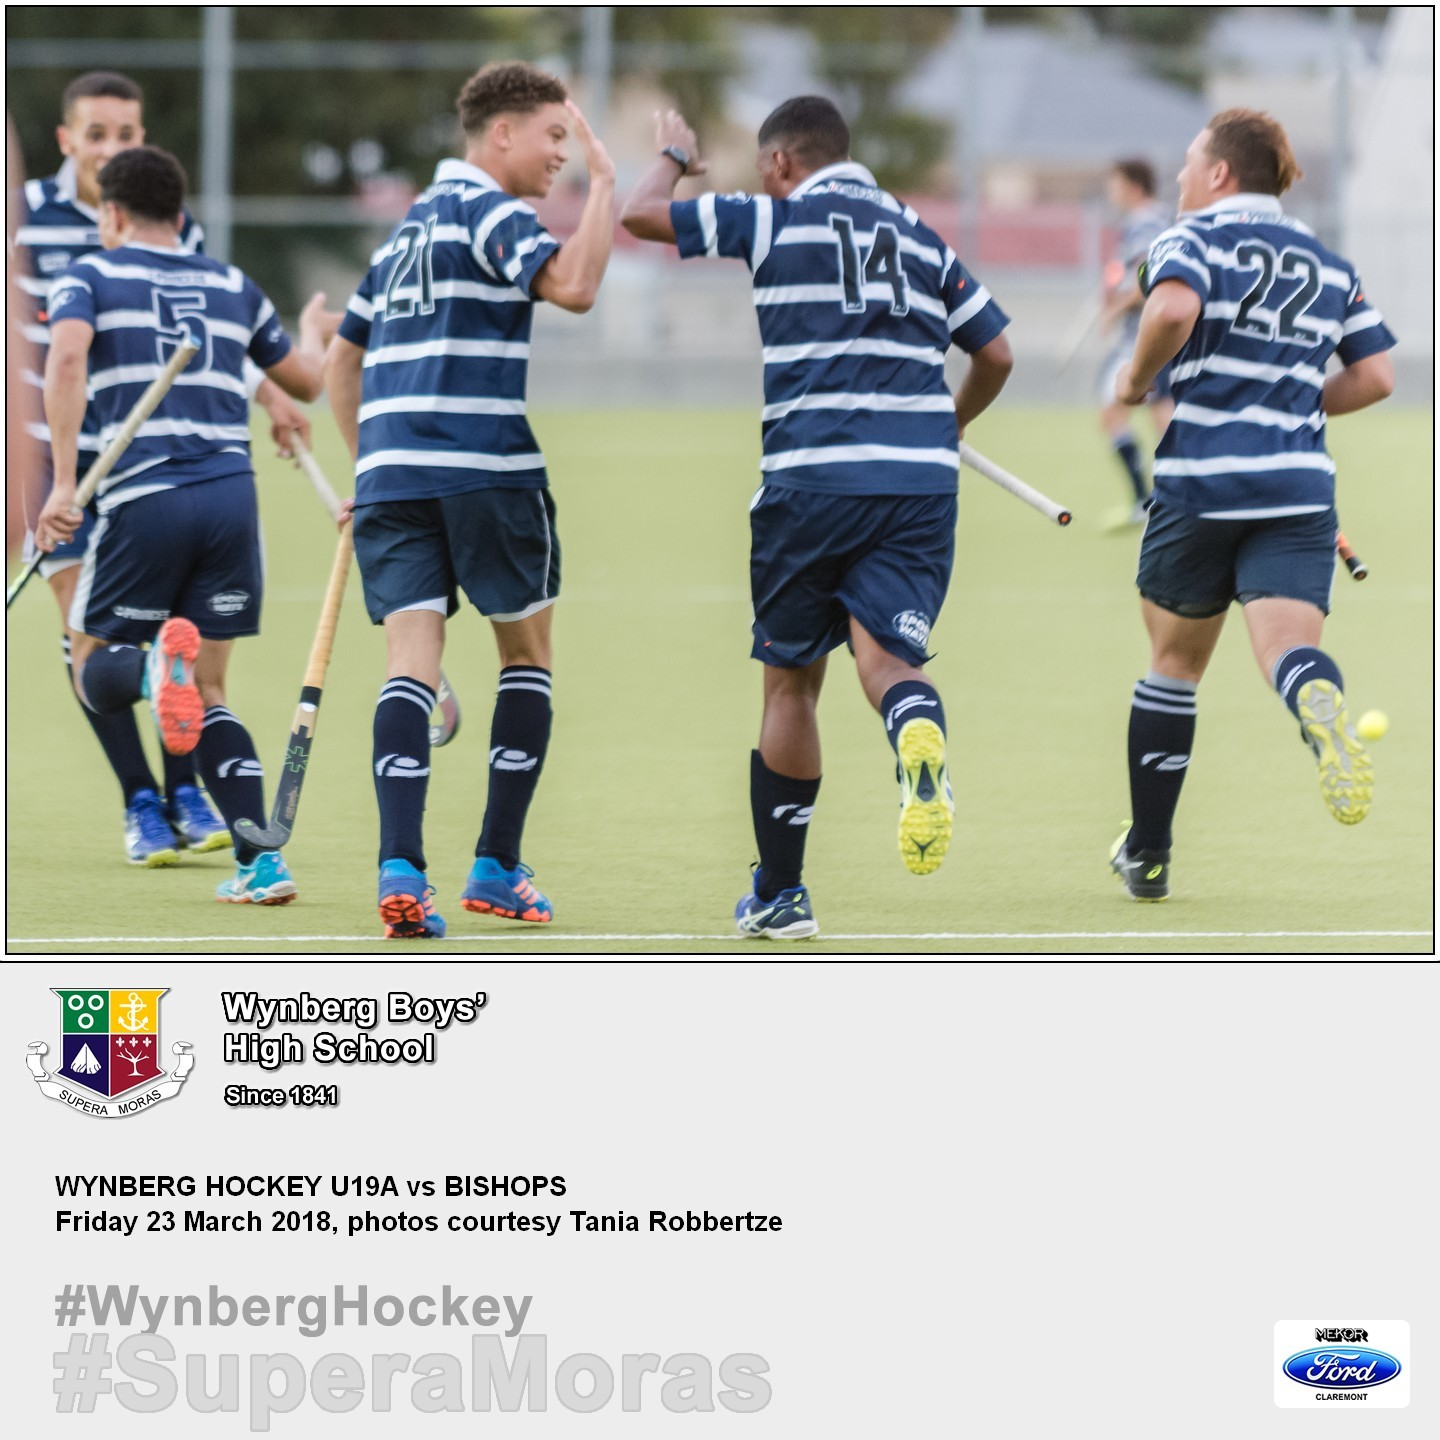 1st XI vs Bishops, Friday 23 March 2018